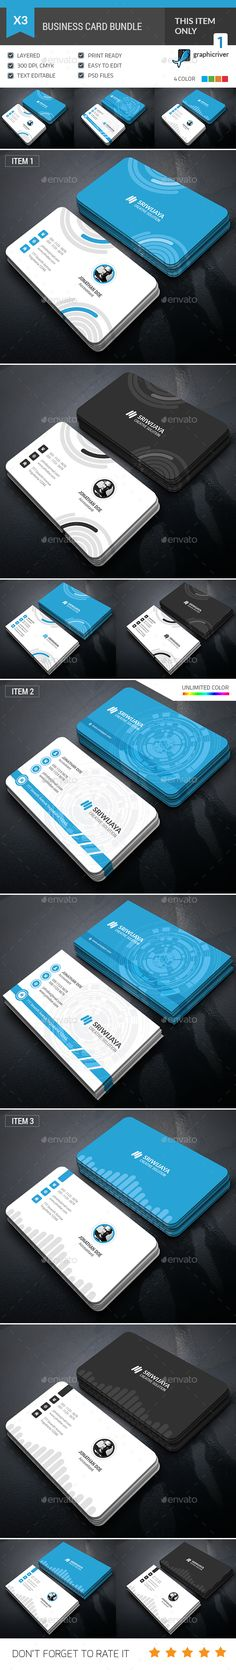 Business Card Bundle — Photoshop PSD #psd #personal • Available here → https://graphicriver.net/item/business-card-bundle/17892887?ref=pxcr